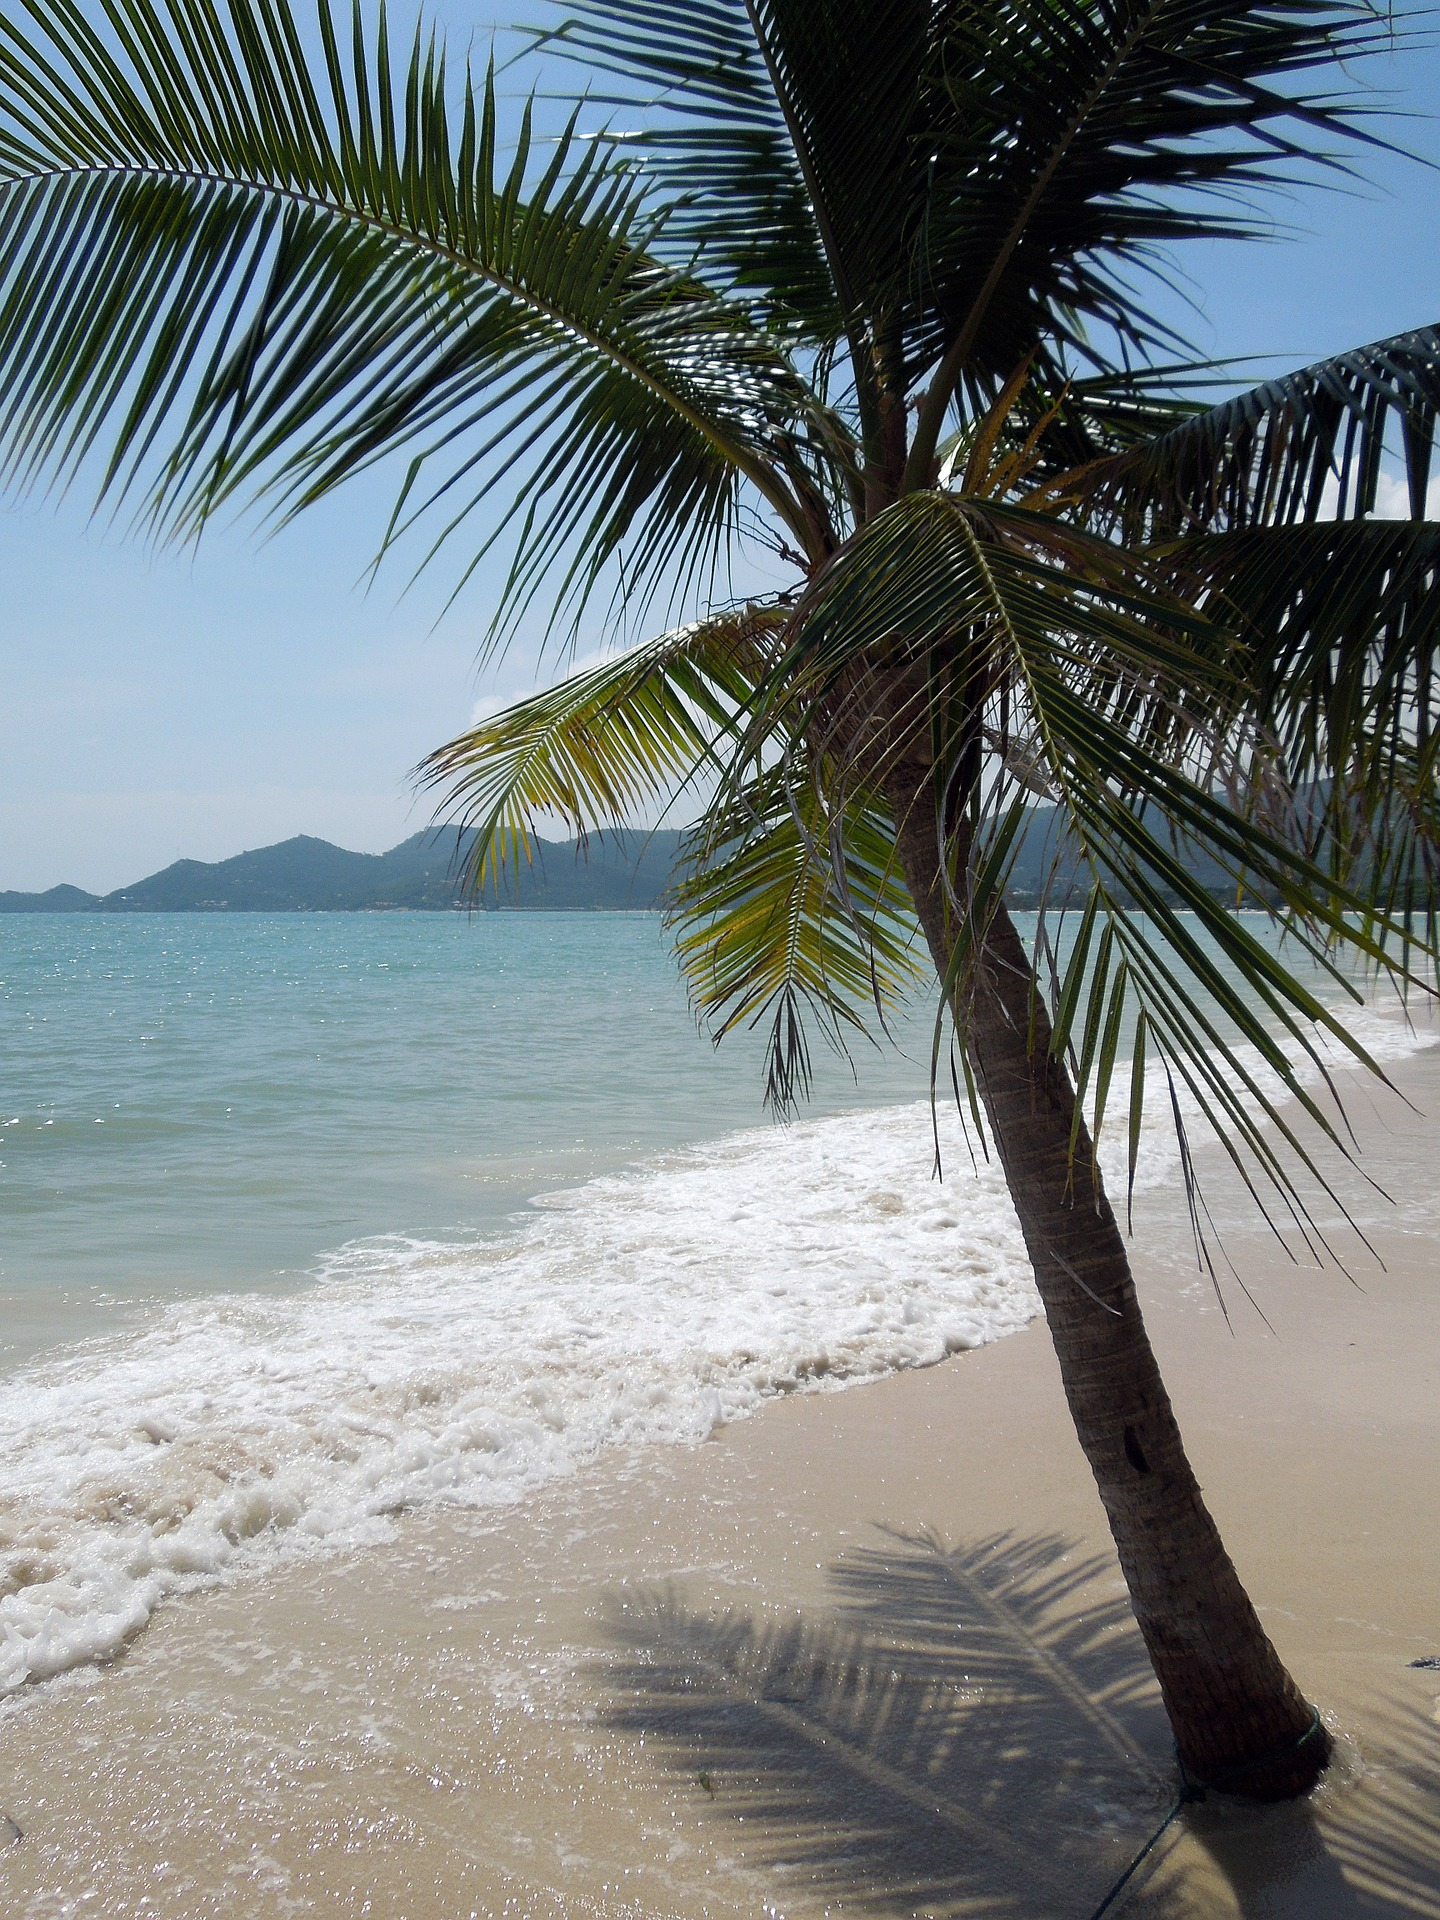 samui-1658583_1920 A Koh Samui trip may turn out to be your best ever island holiday.